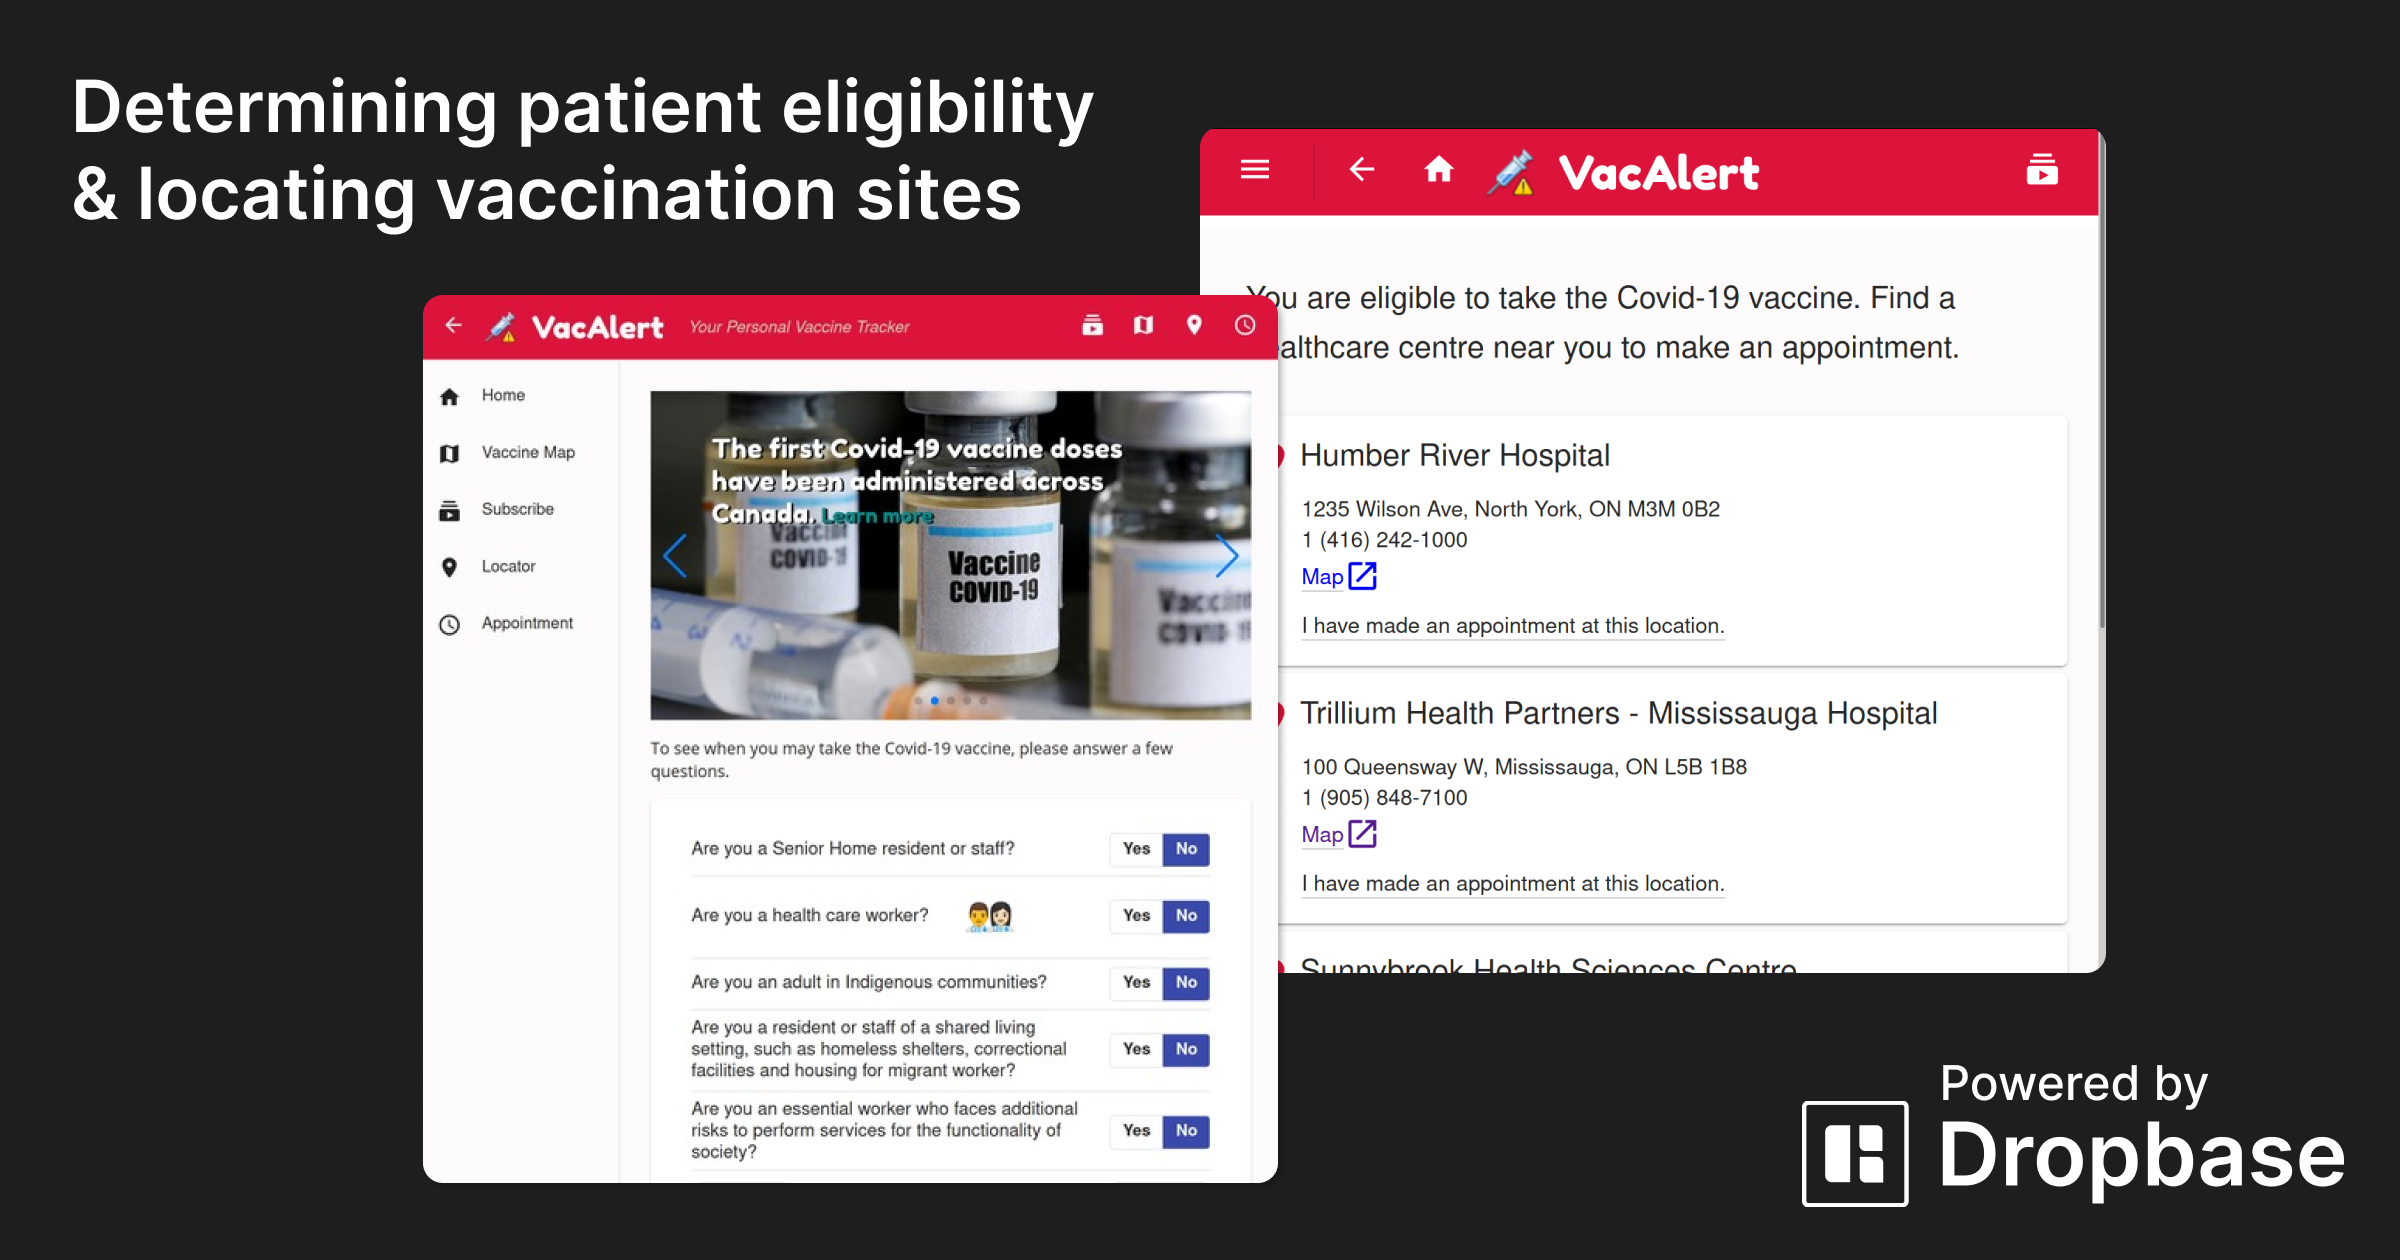 Determining patient eligibility and locating vaccination sites with VacAlert and Dropbase